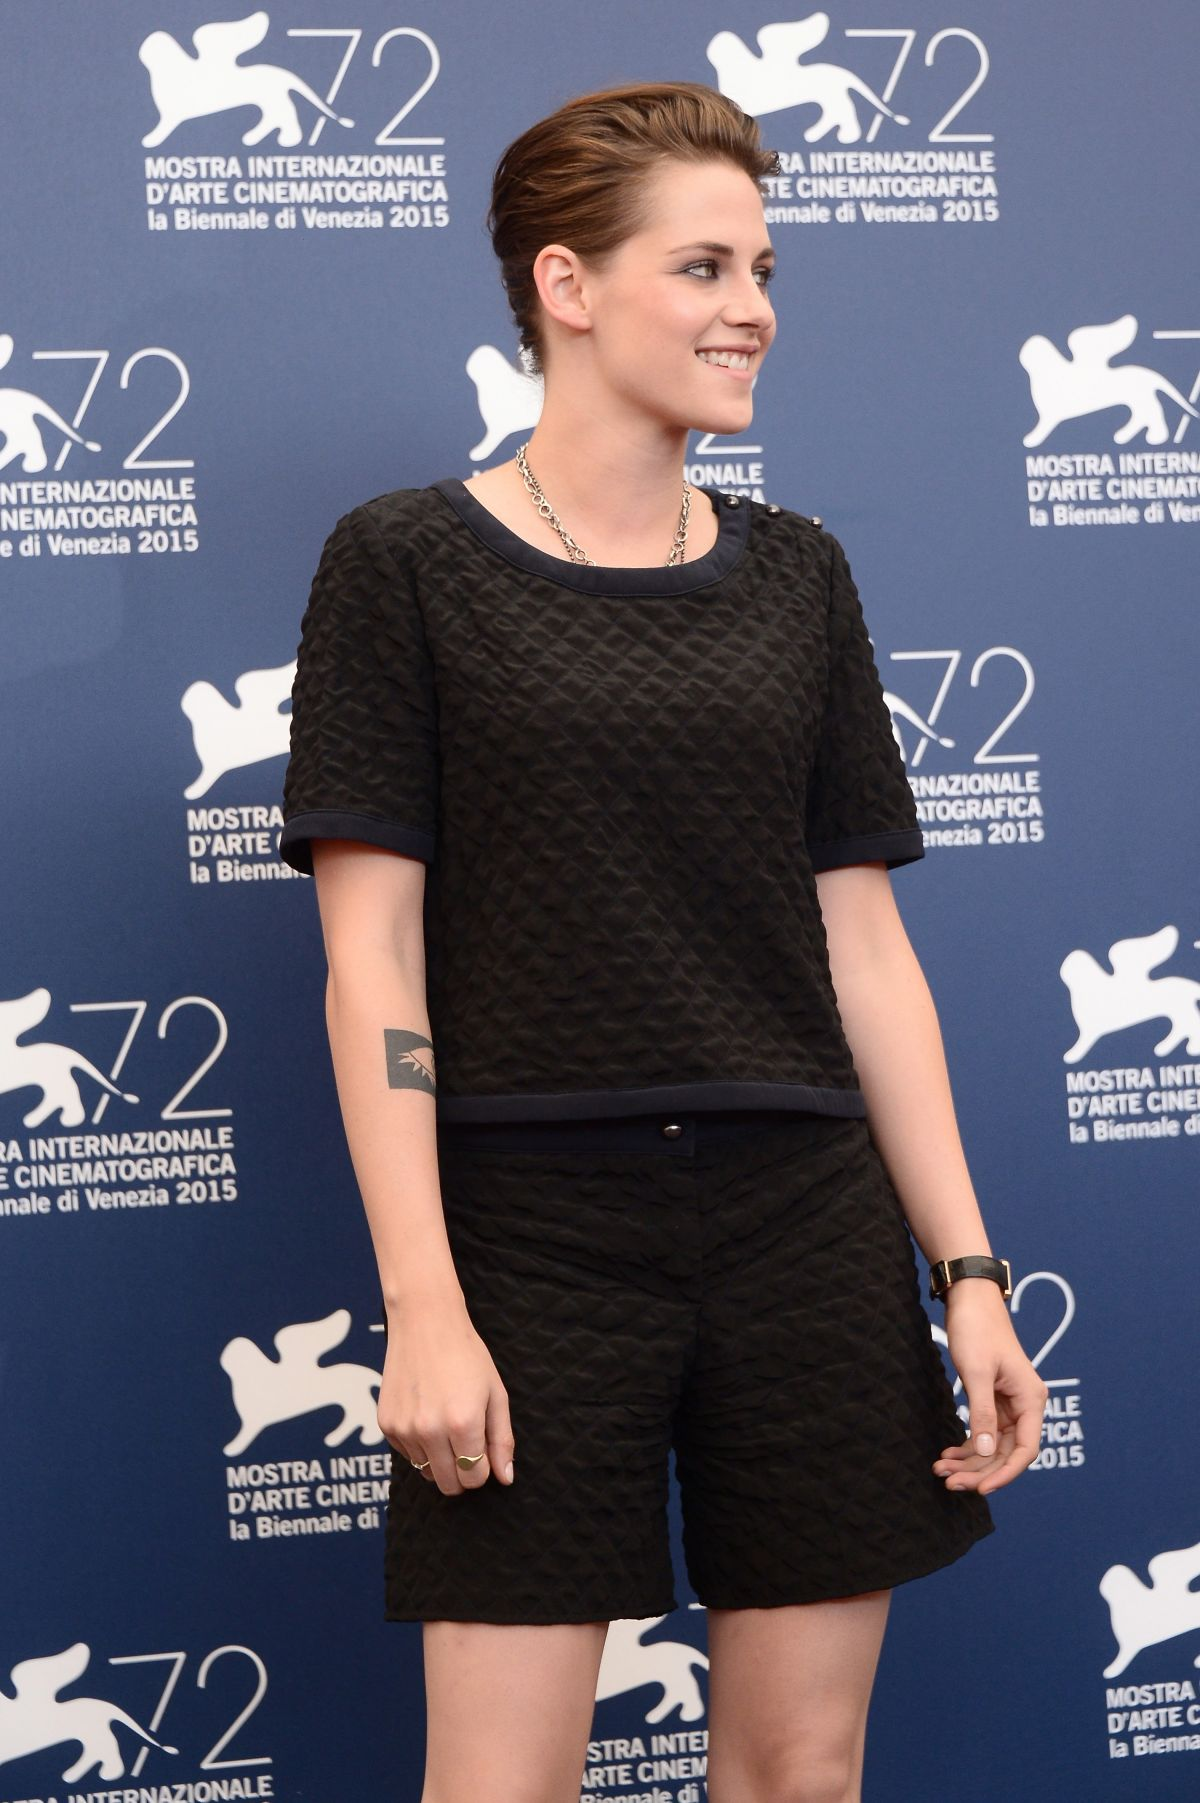 kristen-stewart-at-equals-press-conference-at-2015-venice-film-festival-09-05-2015_1.jpg